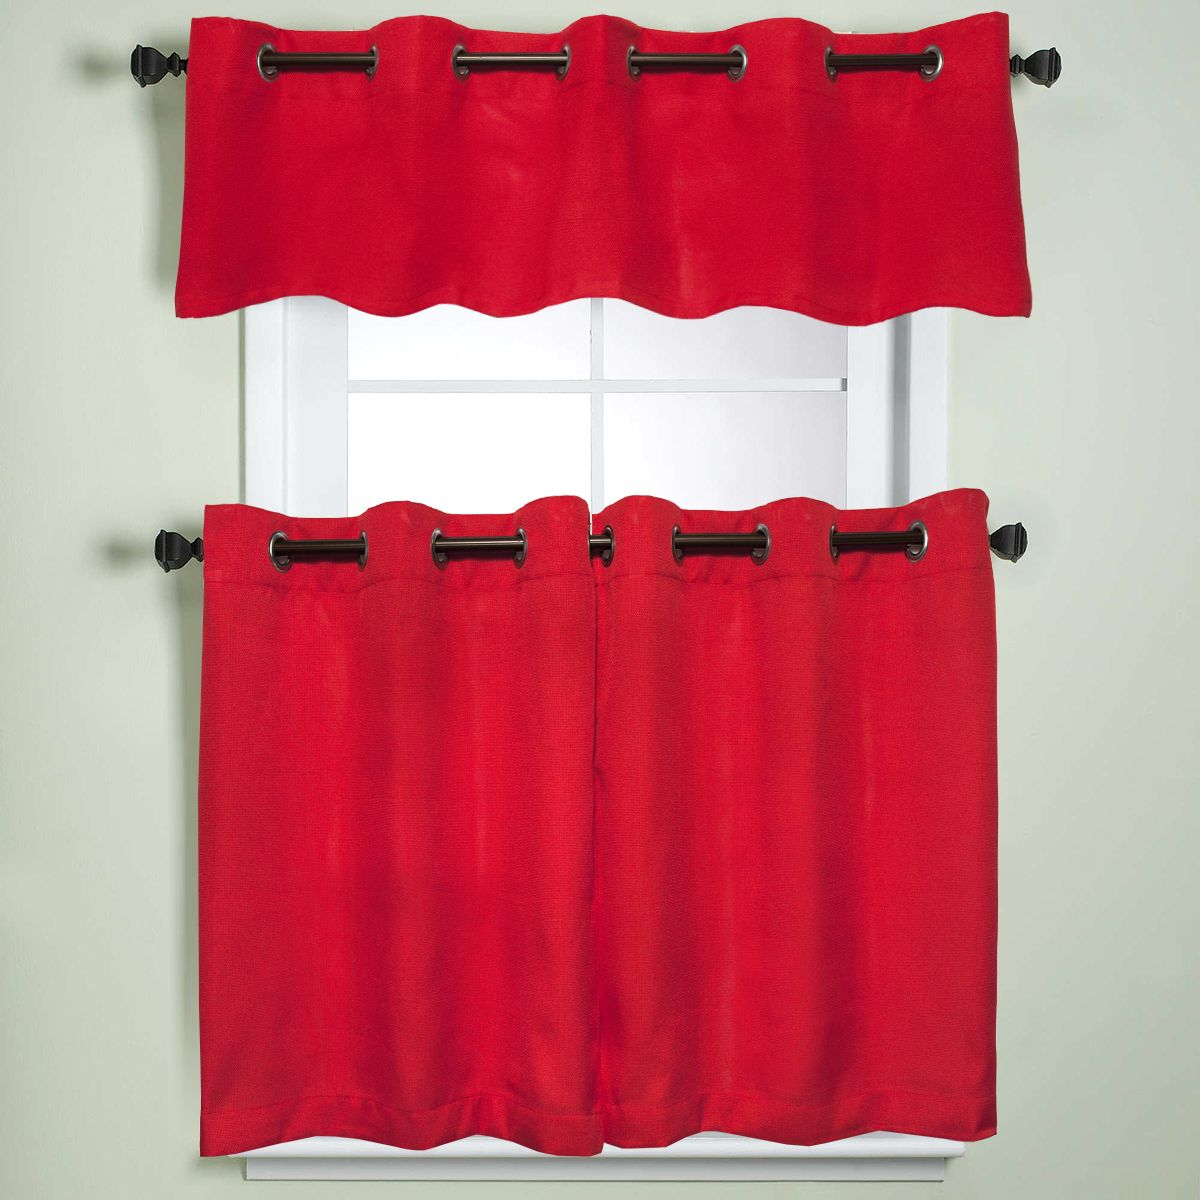 Modern Subtle Texture Solid Red Kitchen Curtains Regarding Most Recent Pin On Products (Gallery 1 of 20)